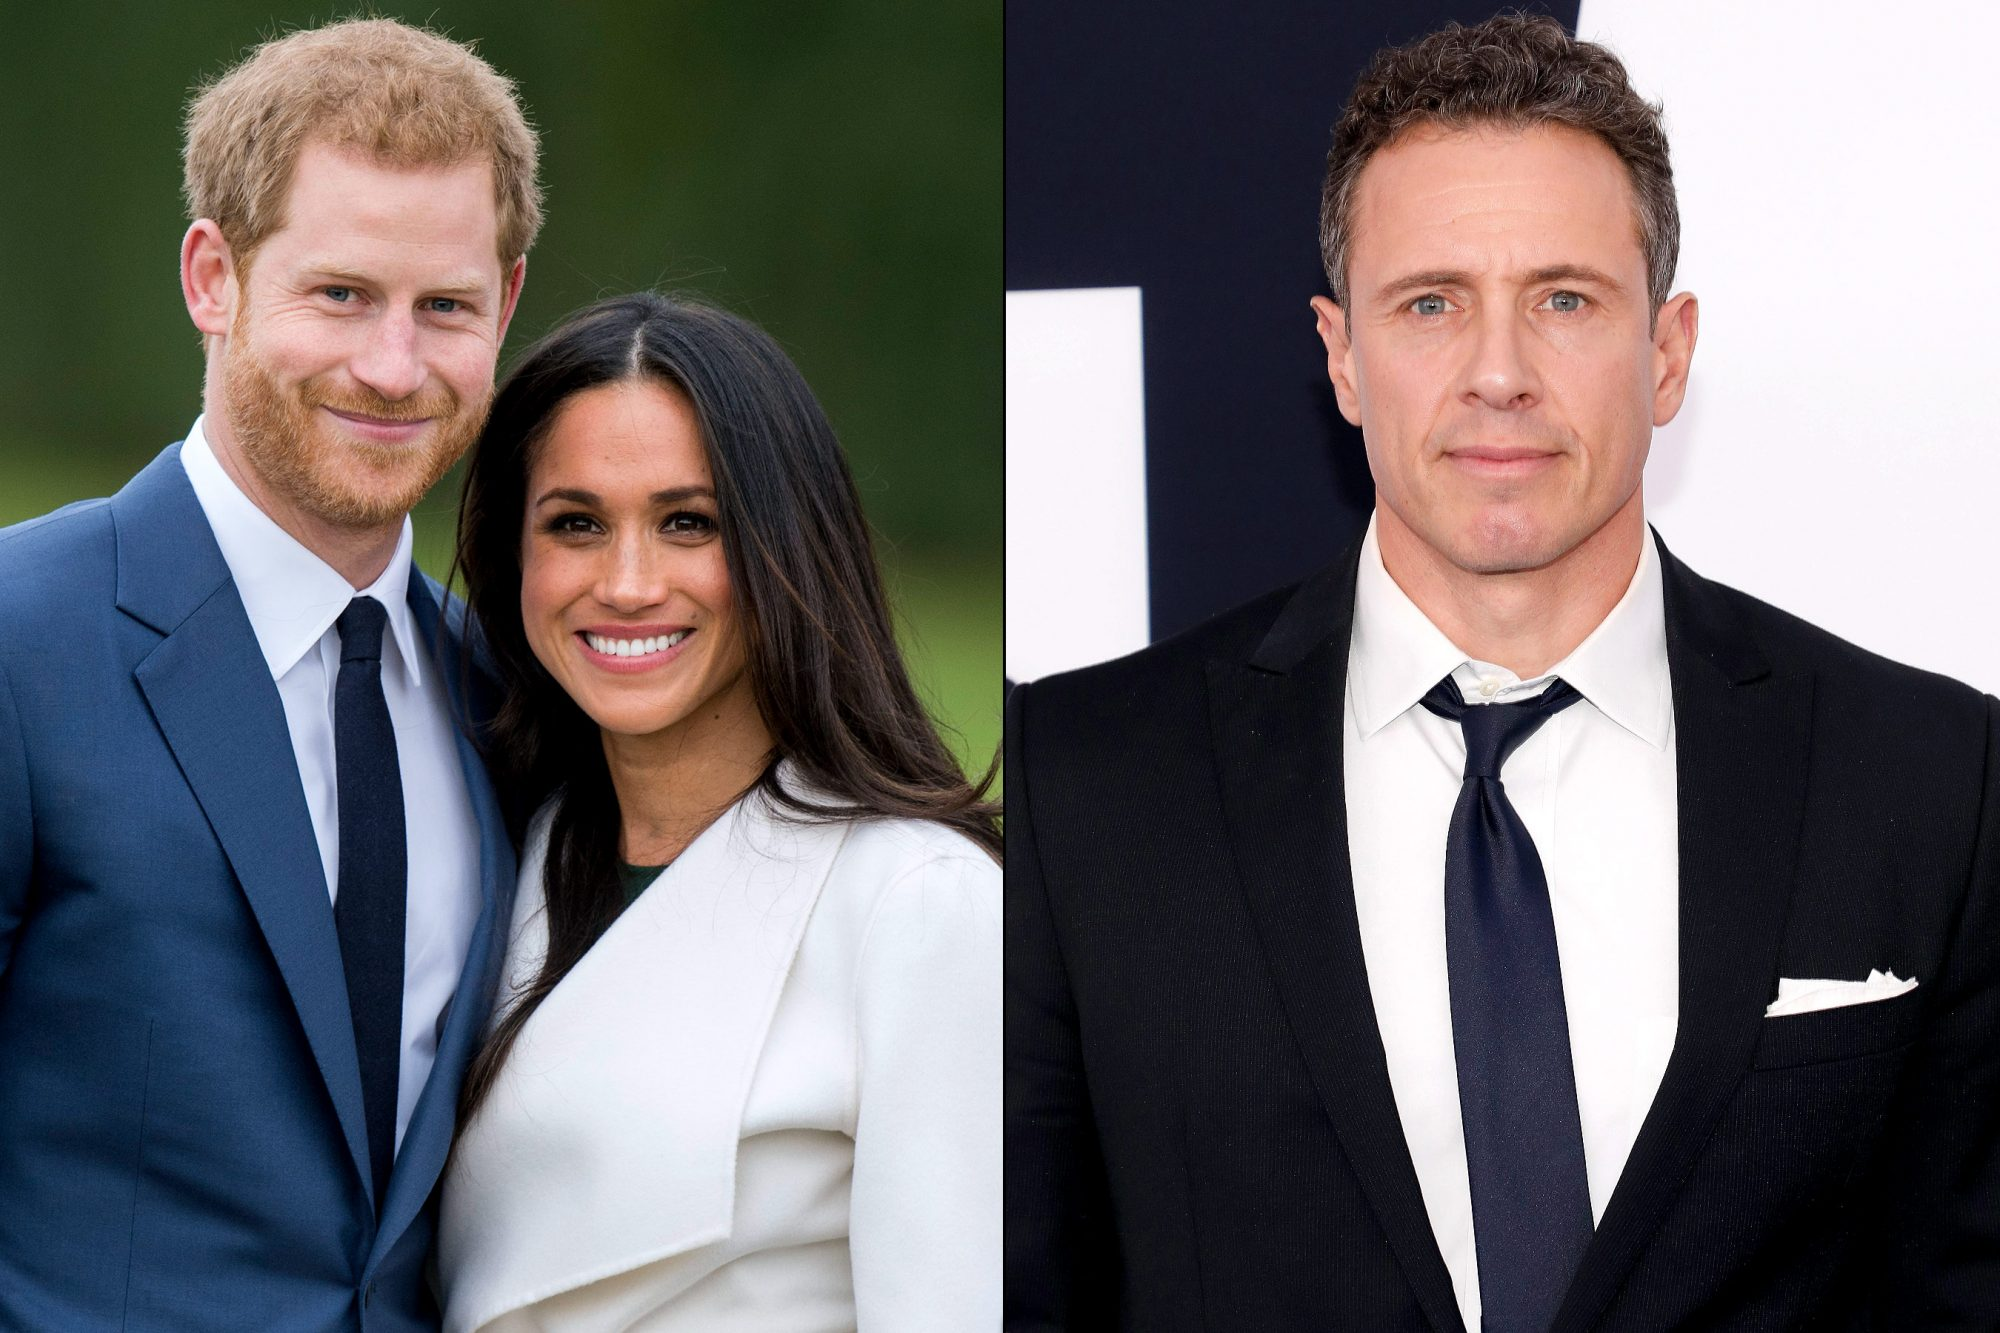 Prince Harry / Meghan Markle / Chris Cuomo